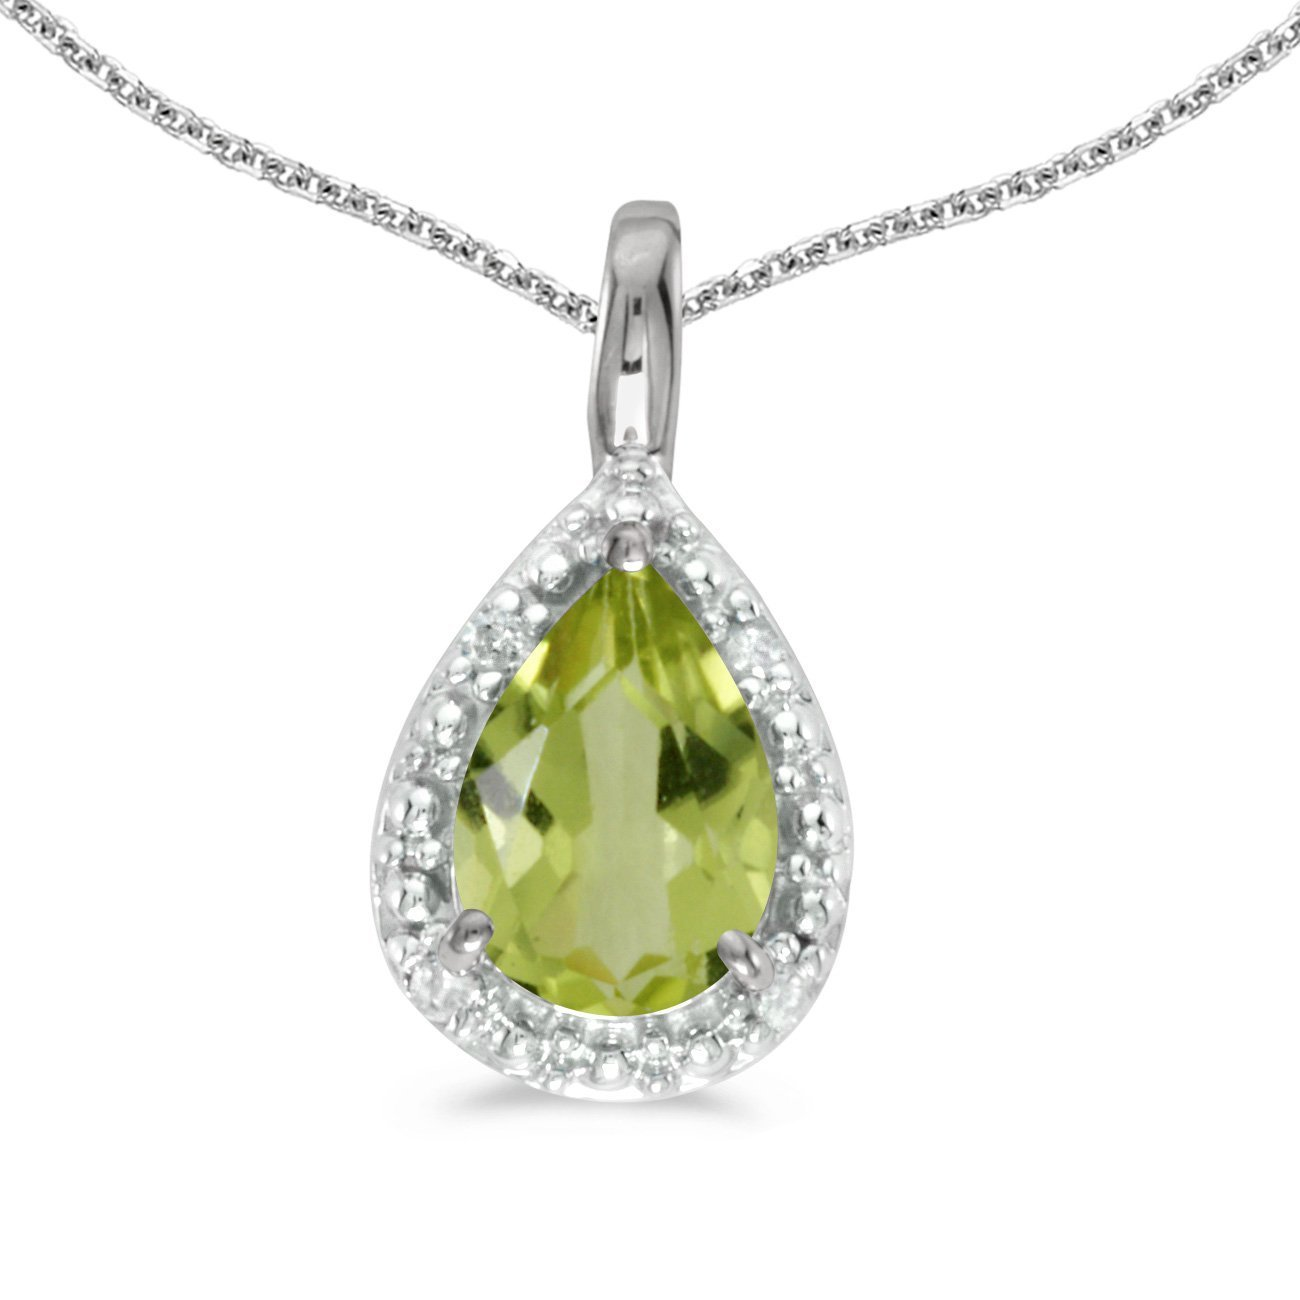 FB Jewels Solid 10k White Gold Genuine Birthstone Pear Gemstone Pendant 3//5 Cttw.